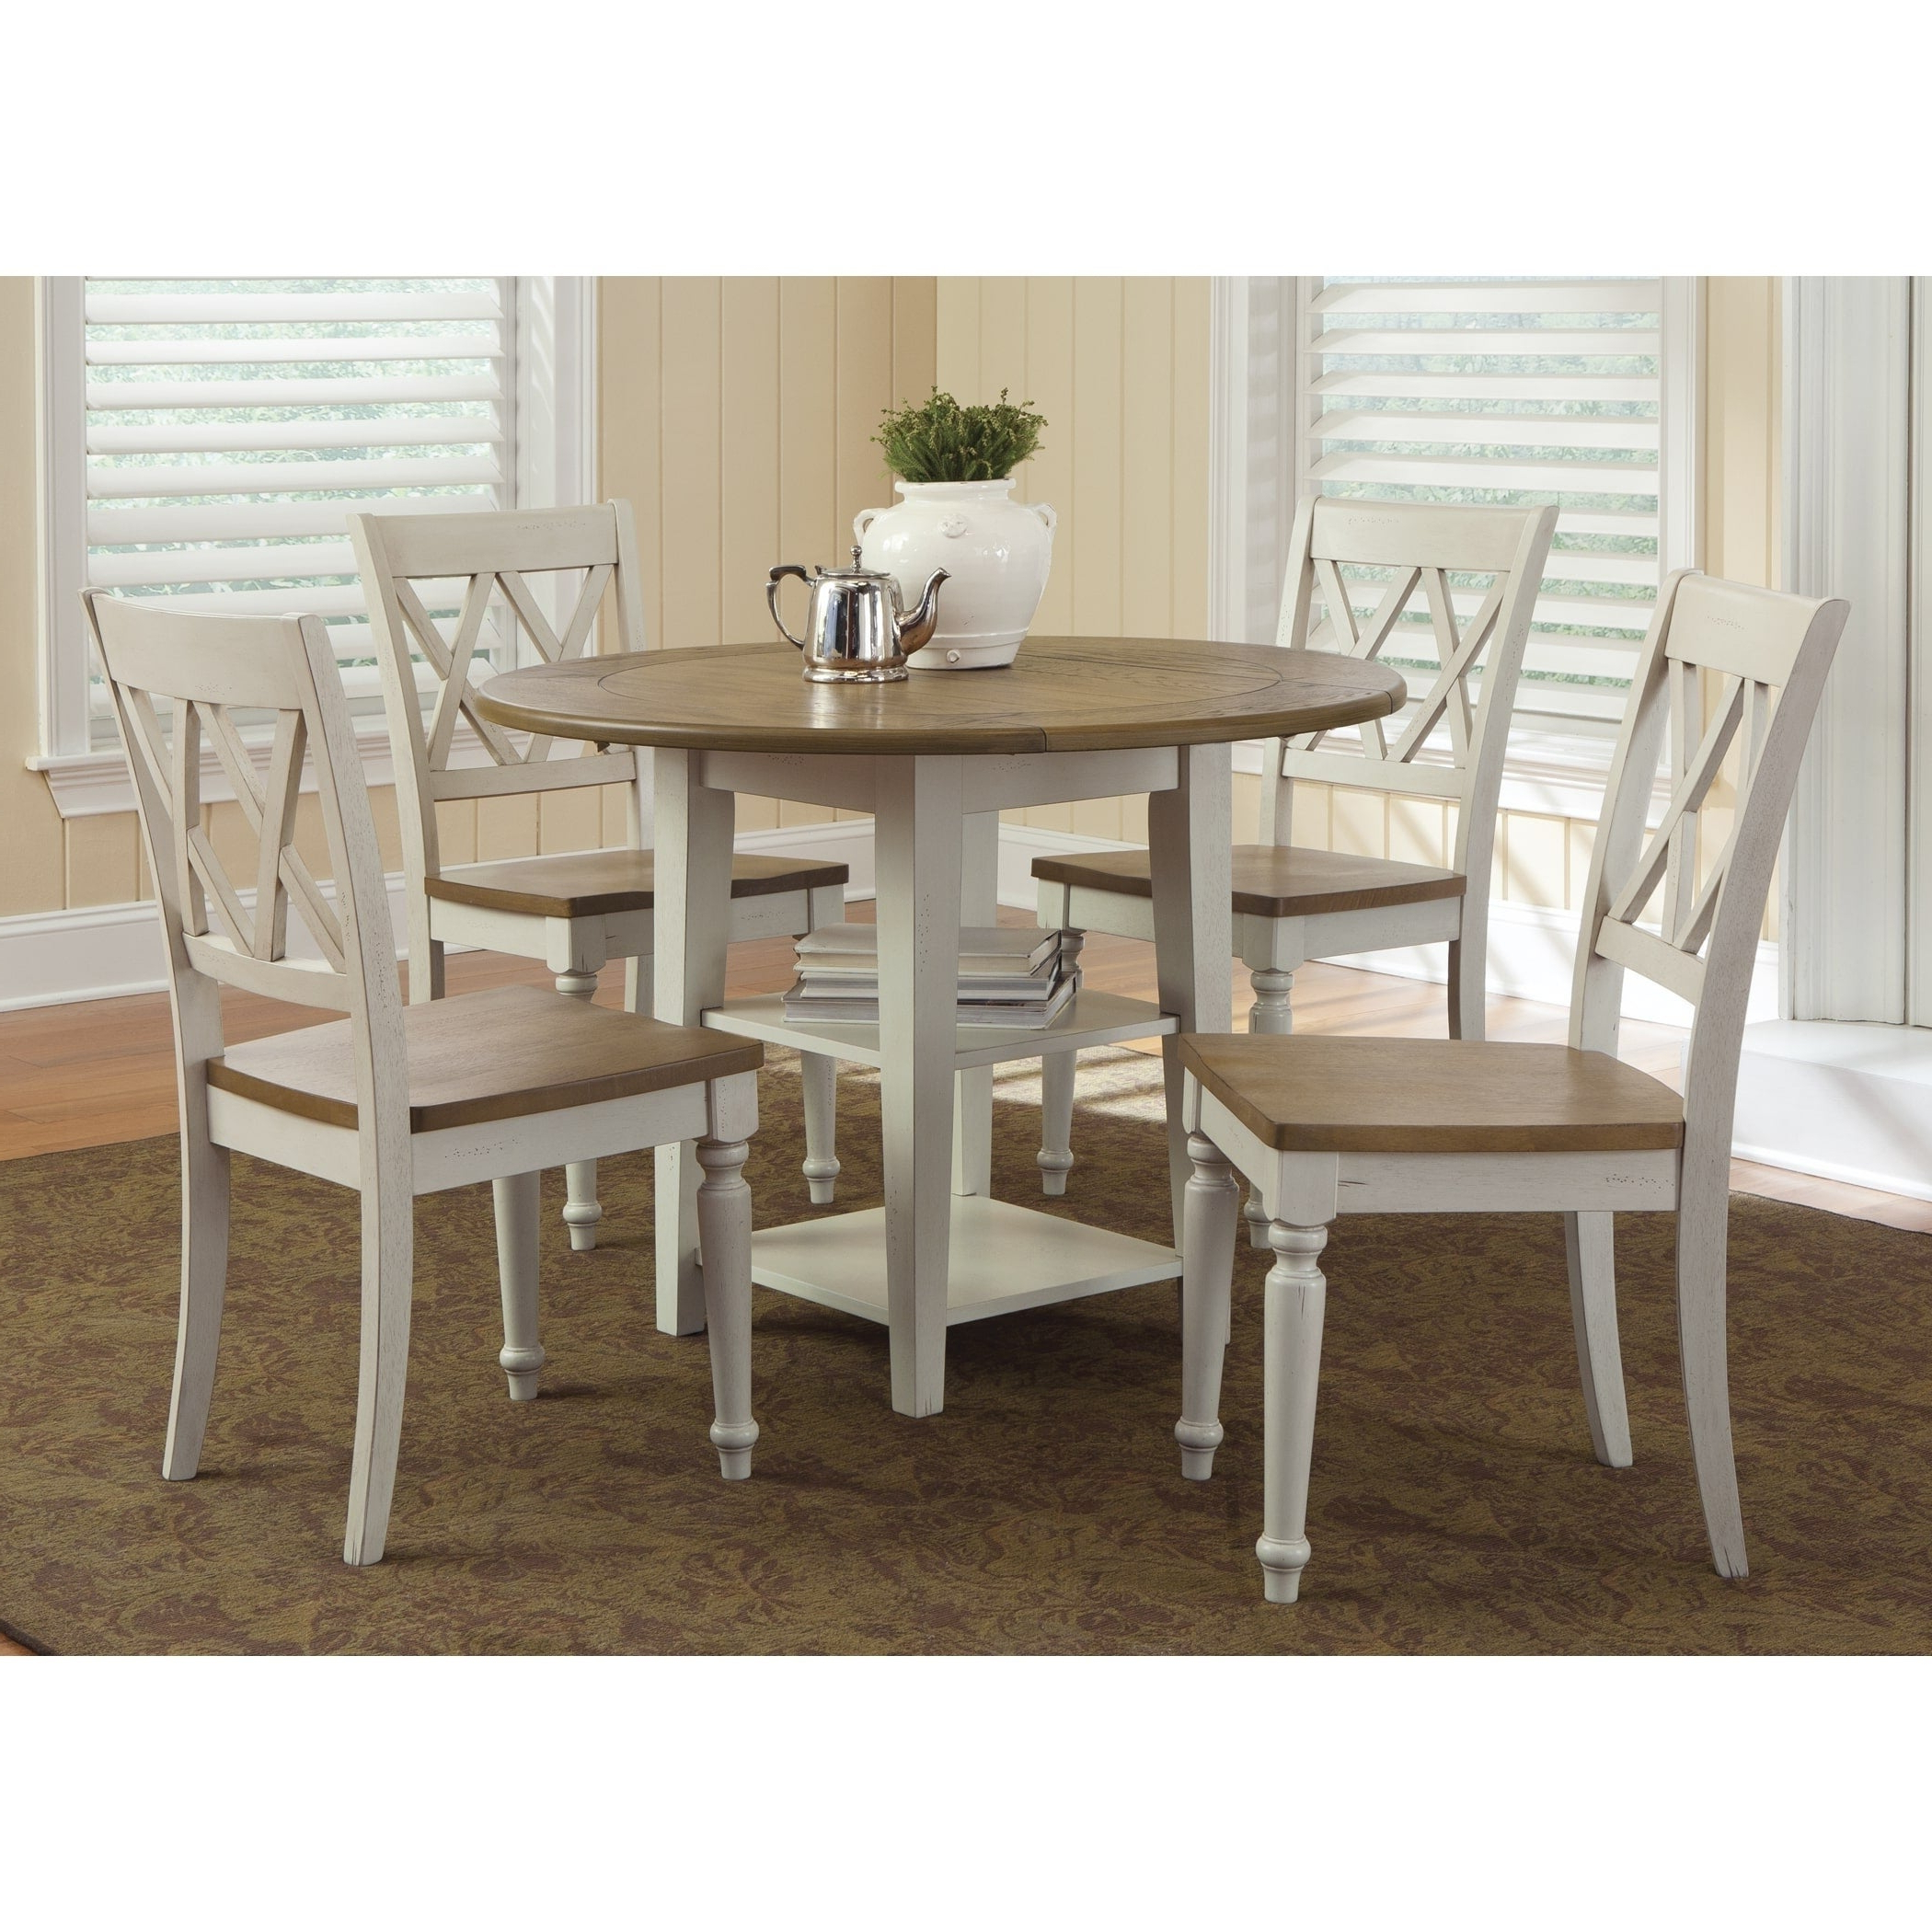 Transitional 4 Seating Drop Leaf Casual Dining Tables For Well Known Al Fresco Two Tone Transitional Drop Leaf Leg Table – Antique White (View 19 of 25)